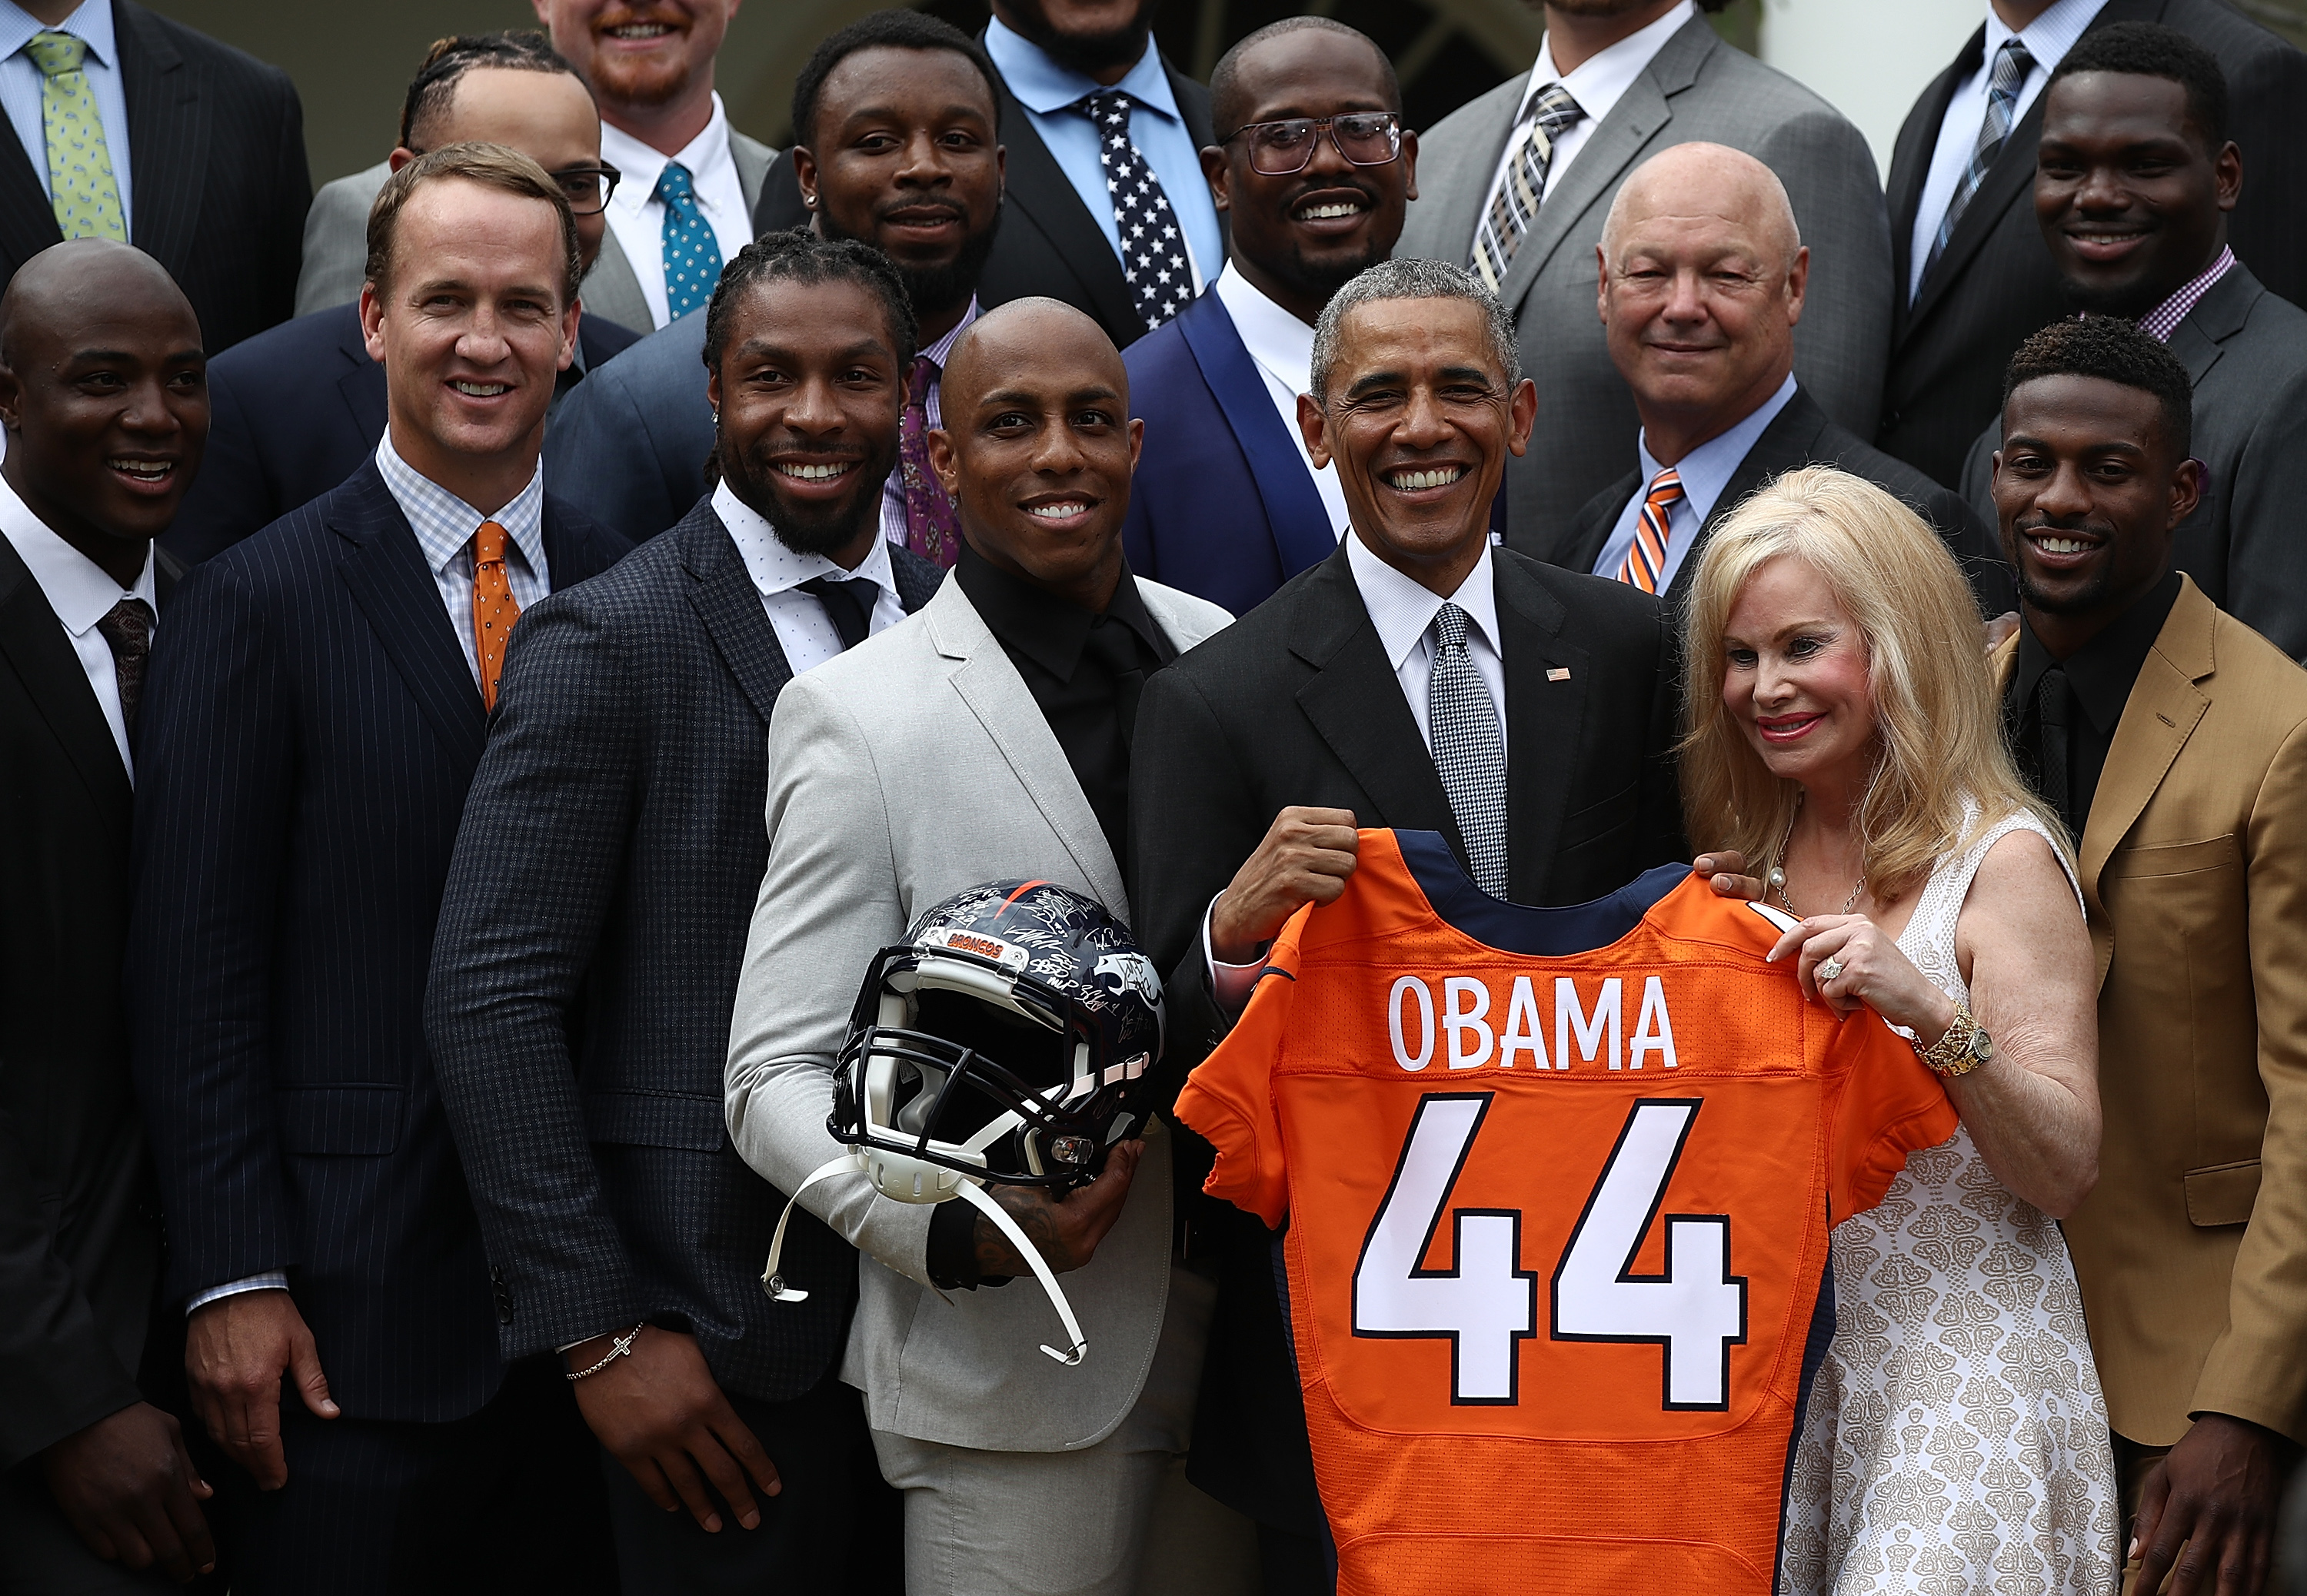 WASHINGTON, DC - JUNE 06: U.S. President Barack Obama holds up a Denver Broncos jersey presented to him as a gift by Annabel Bowlen (R), wife of Broncos majority owner Pat Bowlen, while welcoming the National Football League Super Bowl champion Denver Broncos to the White House Rose Garden on June 6, 2016 in Washington, DC. The Broncos defeated the Carolina Panthers 24-10 in Super Bowl 50. (Photo by Win McNamee/Getty Images)